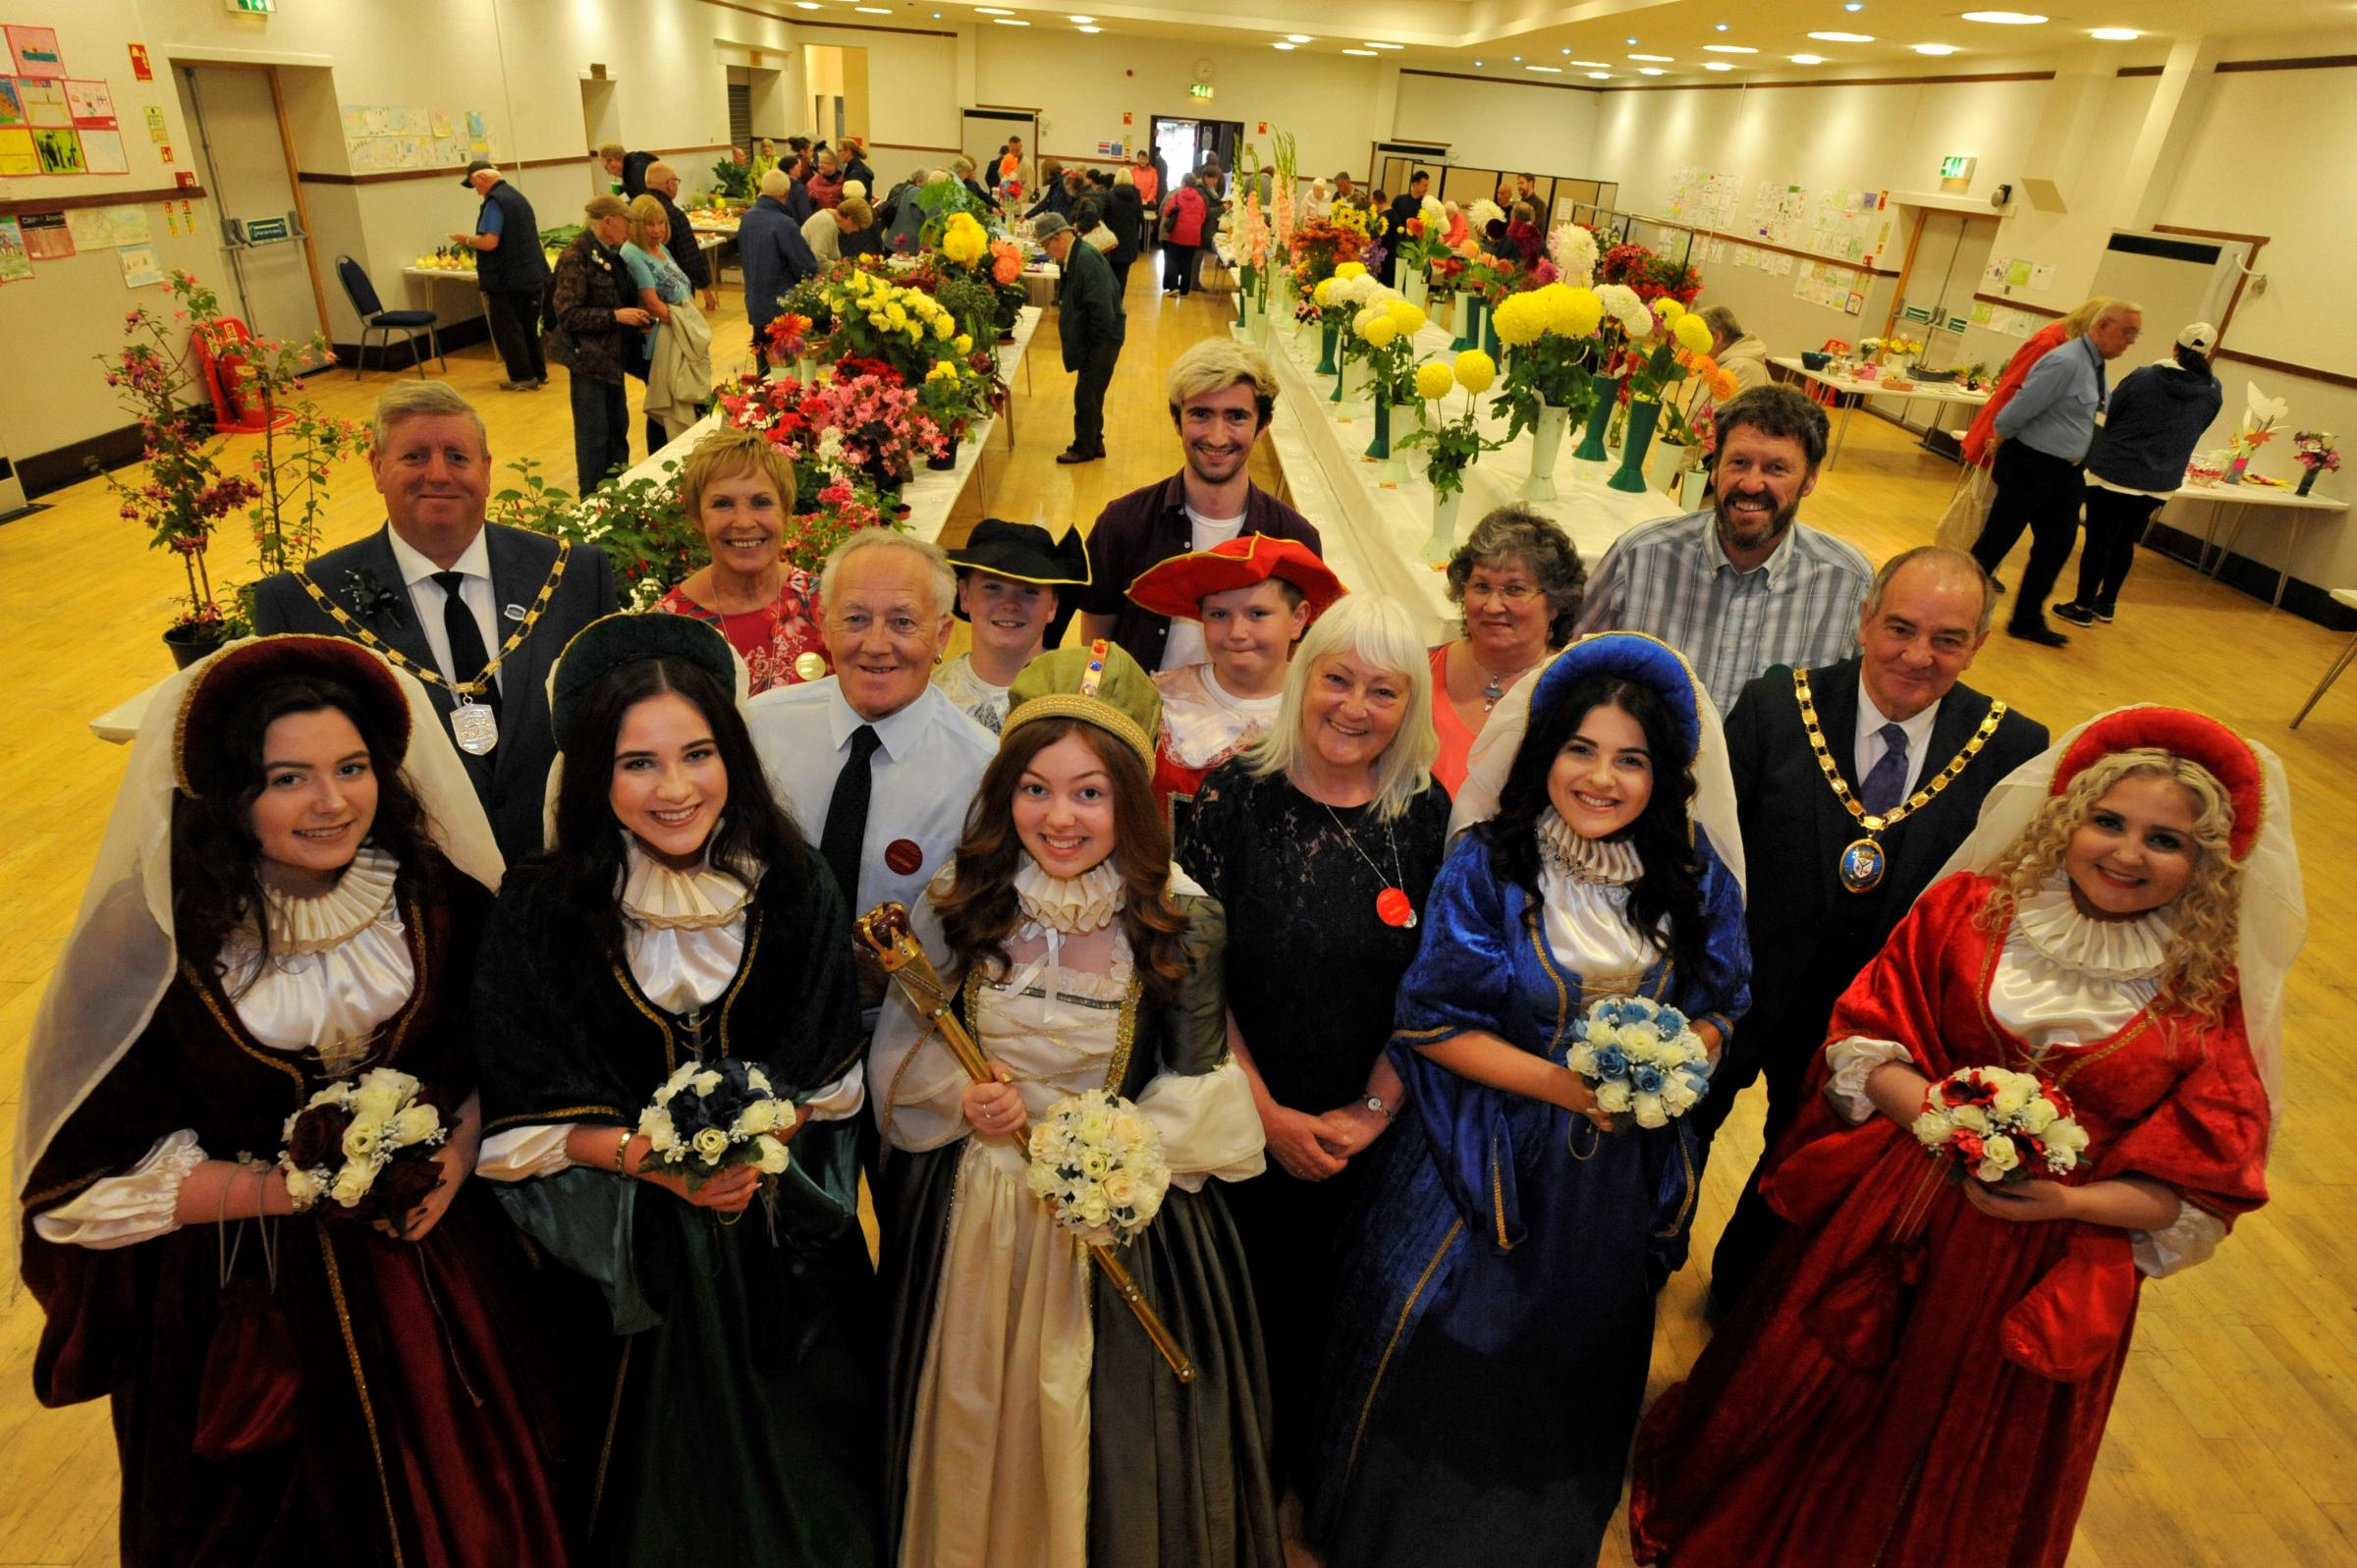 Get your entries in for Marymass Flower show